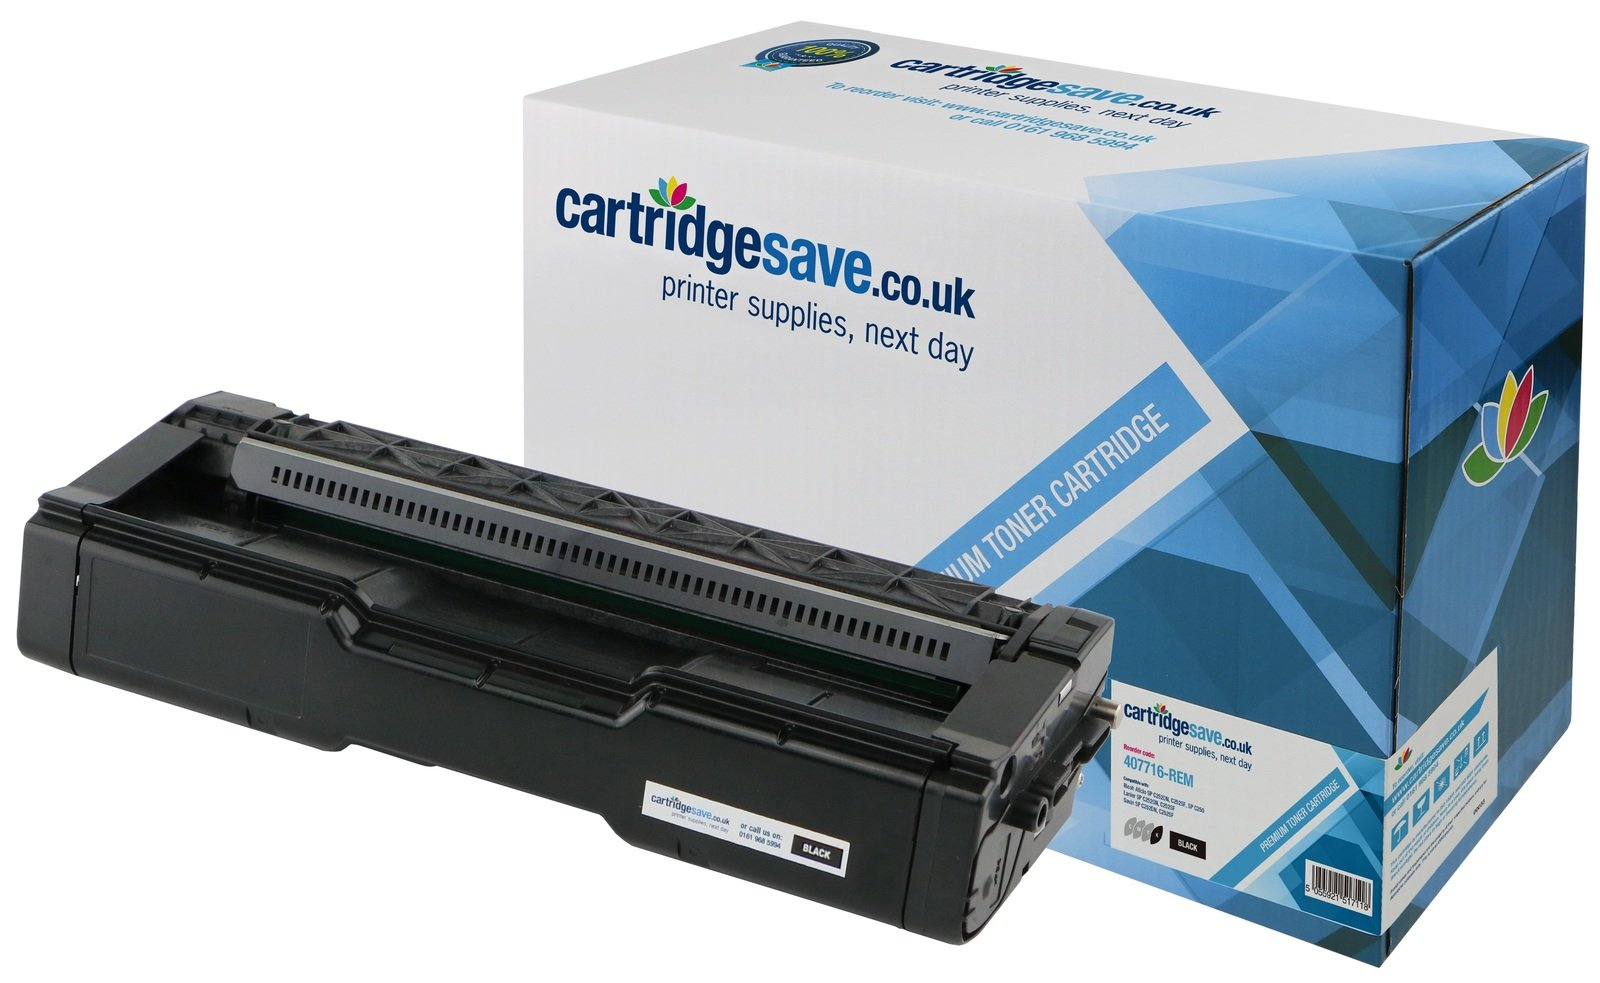 Compatible Black Ricoh 407716 Laser Toner (Replaces Ricoh 407716 Laser Printer Cartridge)